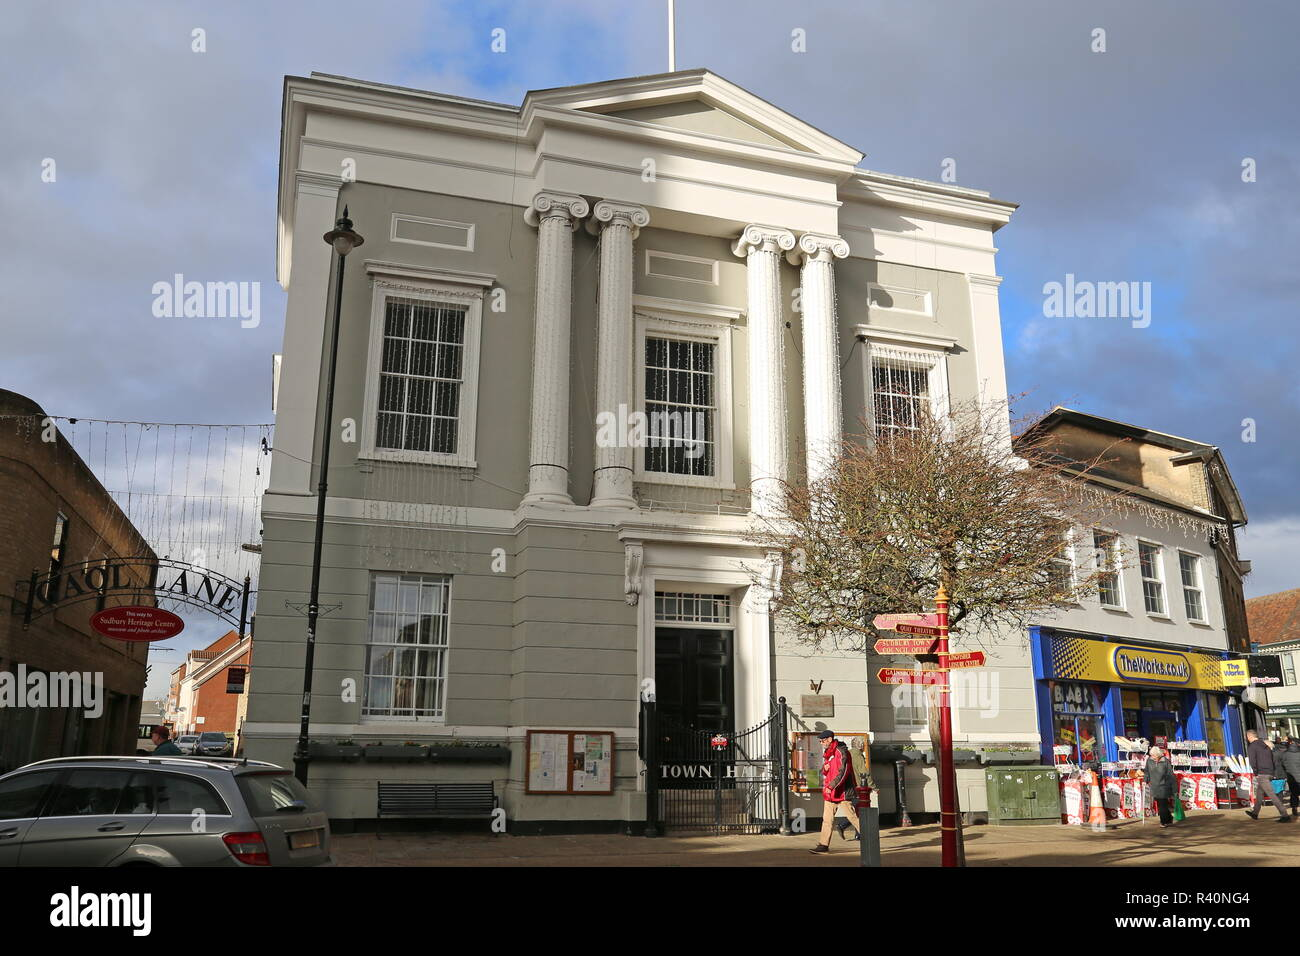 Town Hall, Market Hill, Sudbury, Babergh district, Suffolk, East Anglia, England, Great Britain, United Kingdom, UK, Europe - Stock Image